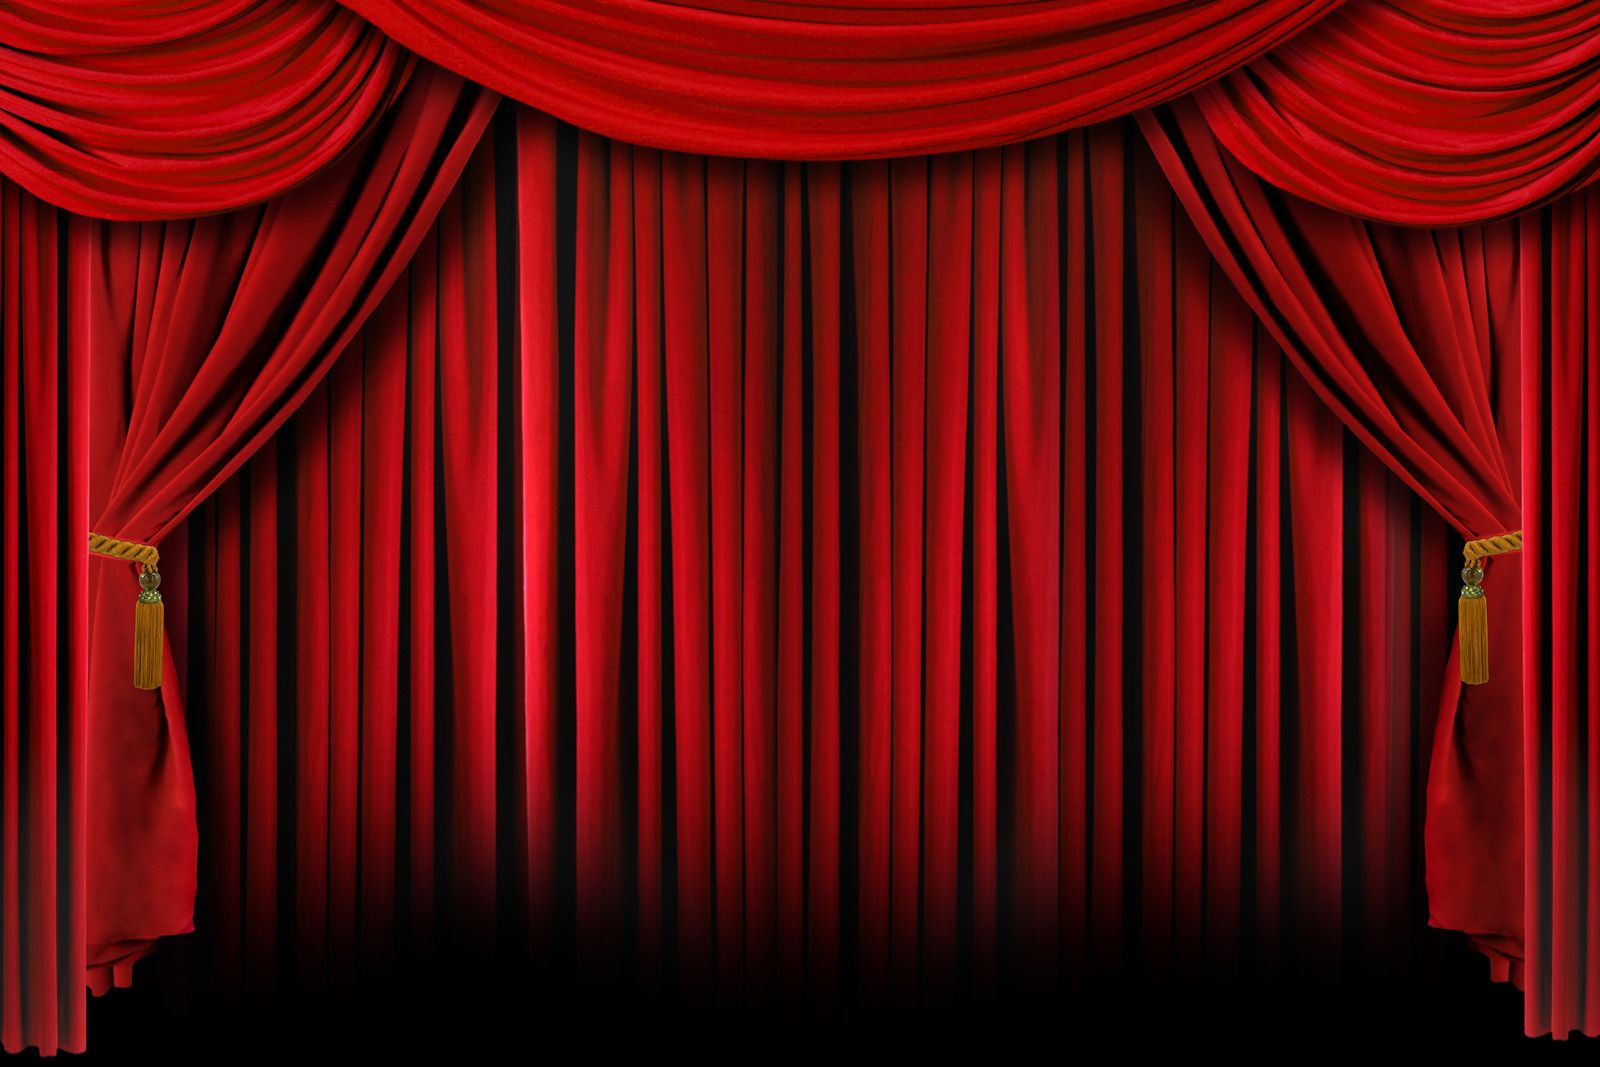 Stage curtain background open stage curtains background red stage - A 1945 Code Of Ethics For Theatre Workers Surfaces This Stage